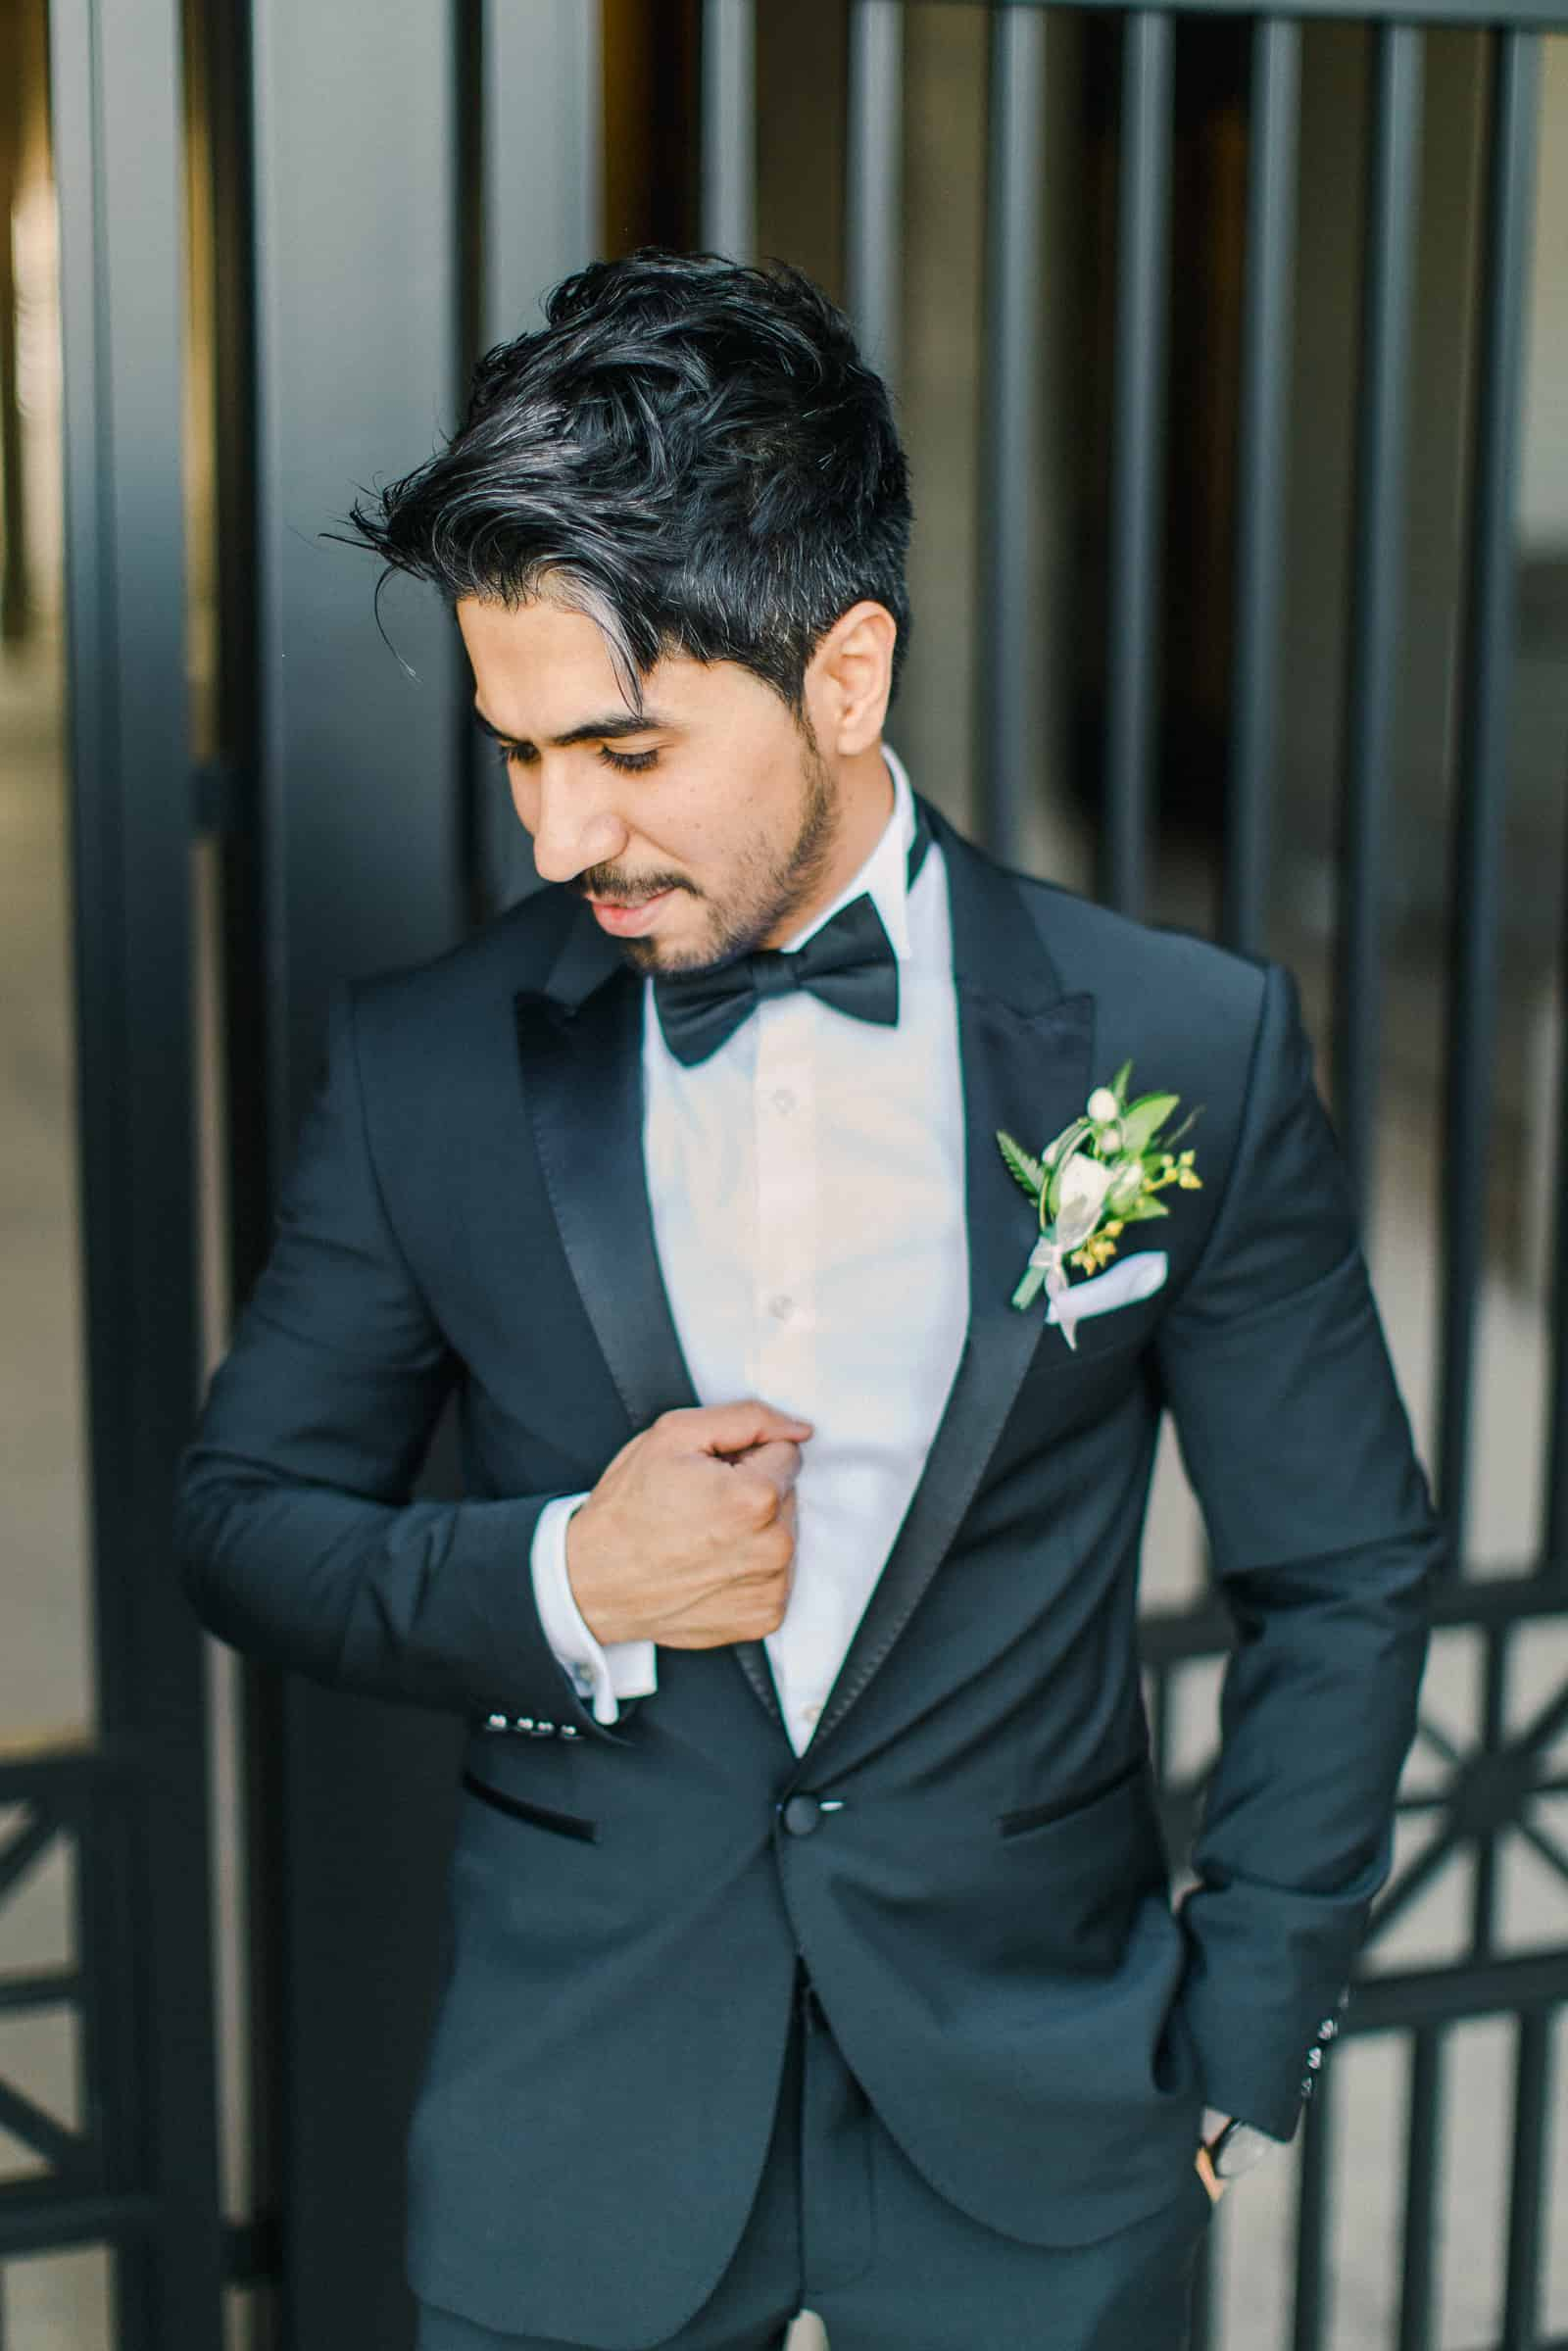 Palestinian Iranian Bride and Groom, Utah Wedding Photography at the Utah State Capitol, groom in classic black tux and black bow tie boutonniere